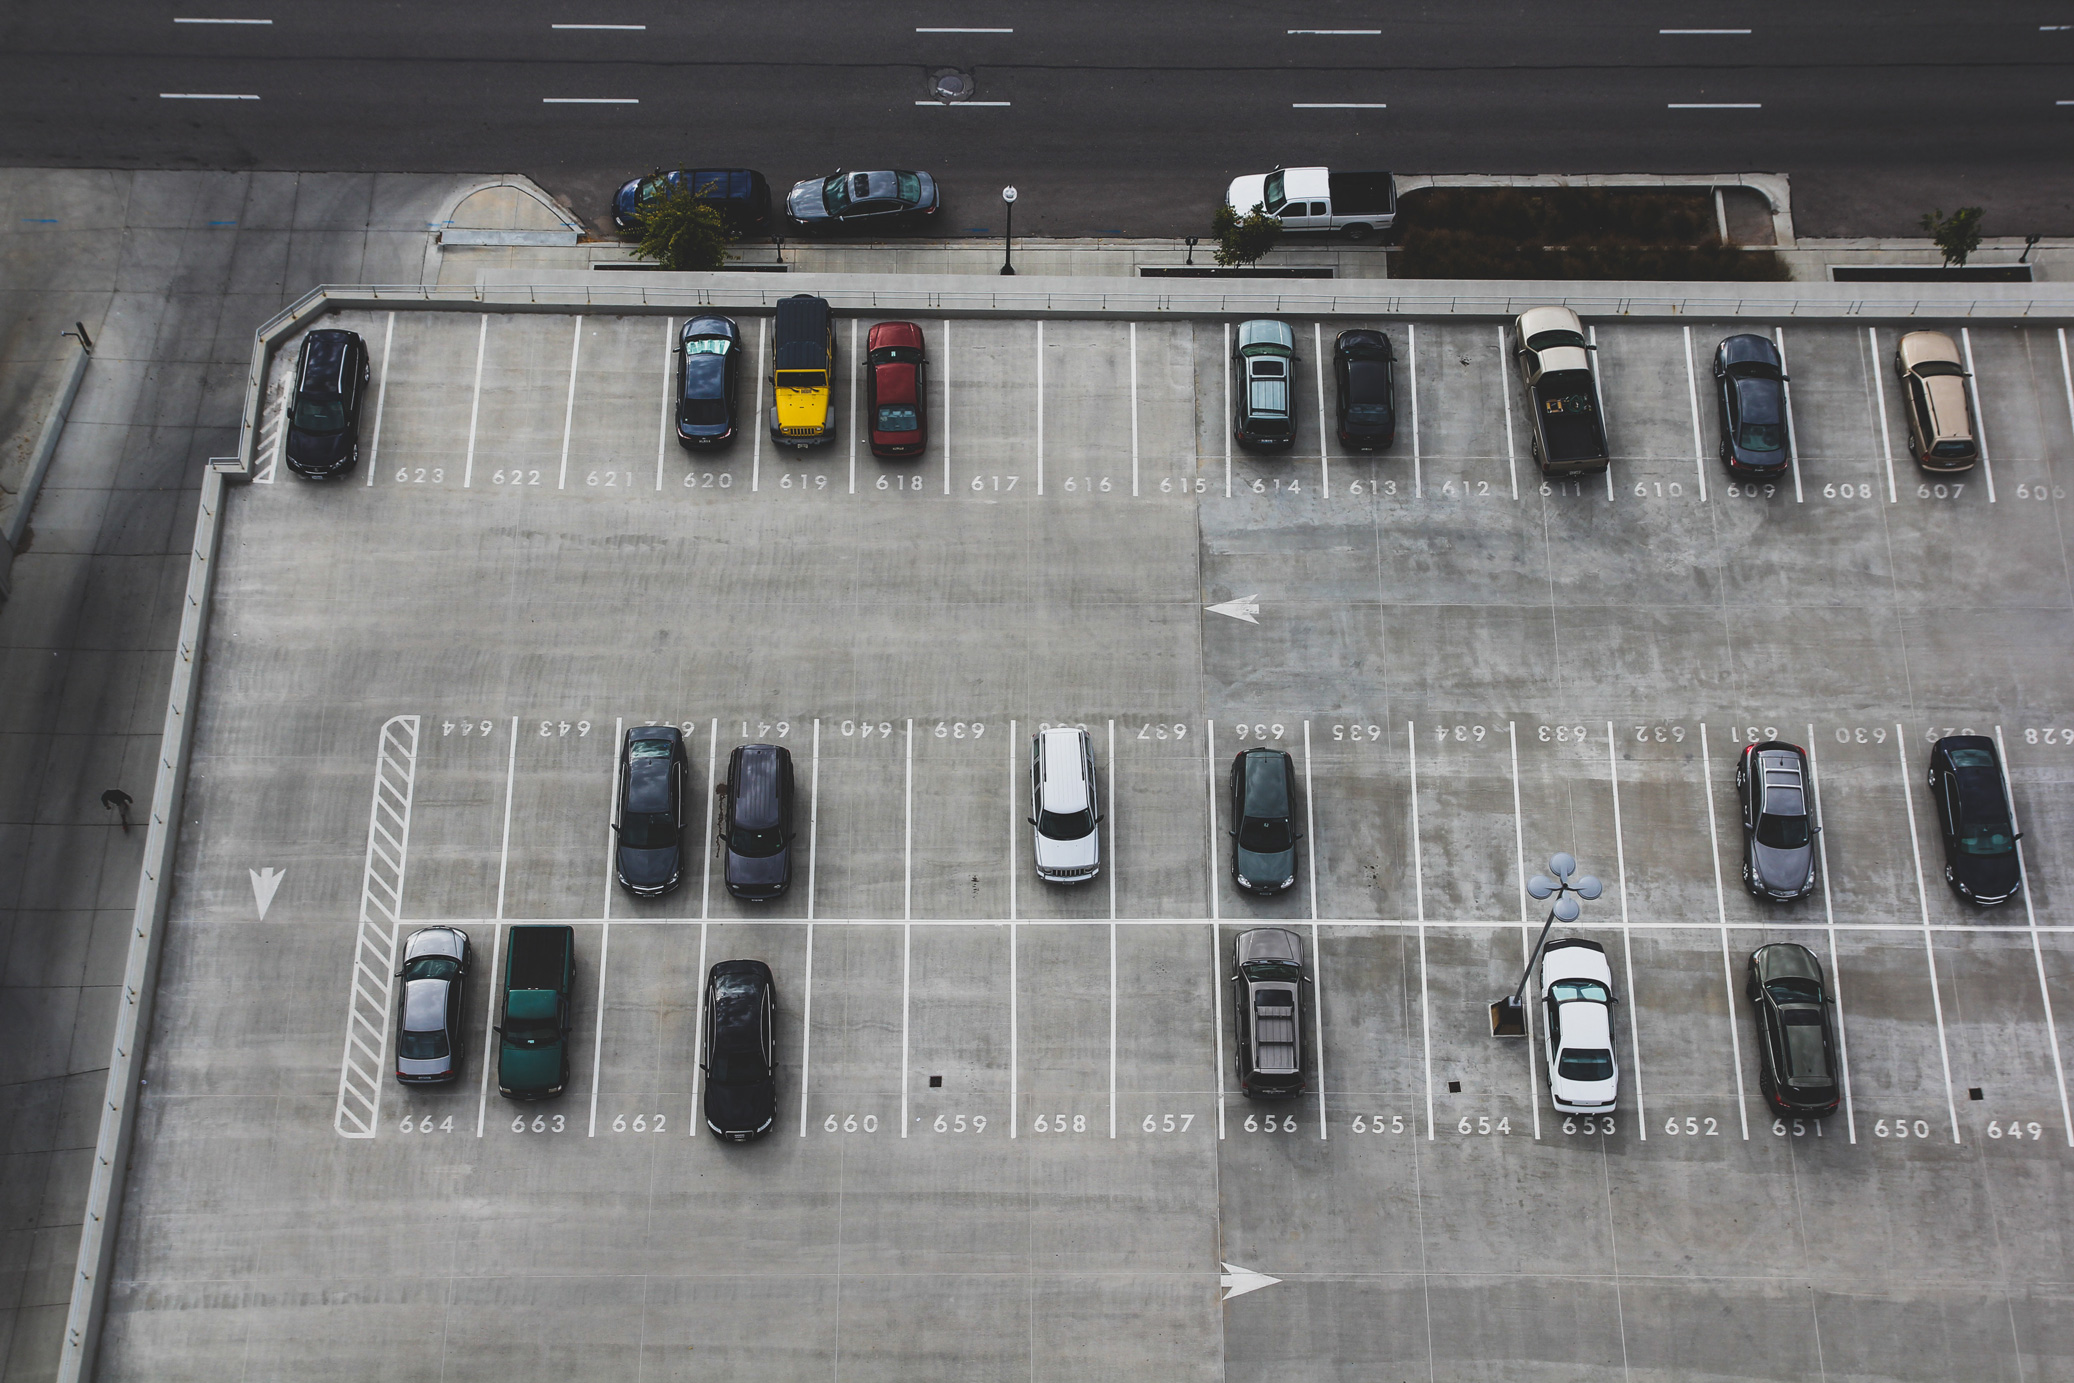 An ariel image of an outdoor parking lot with some cars parked in the stalls